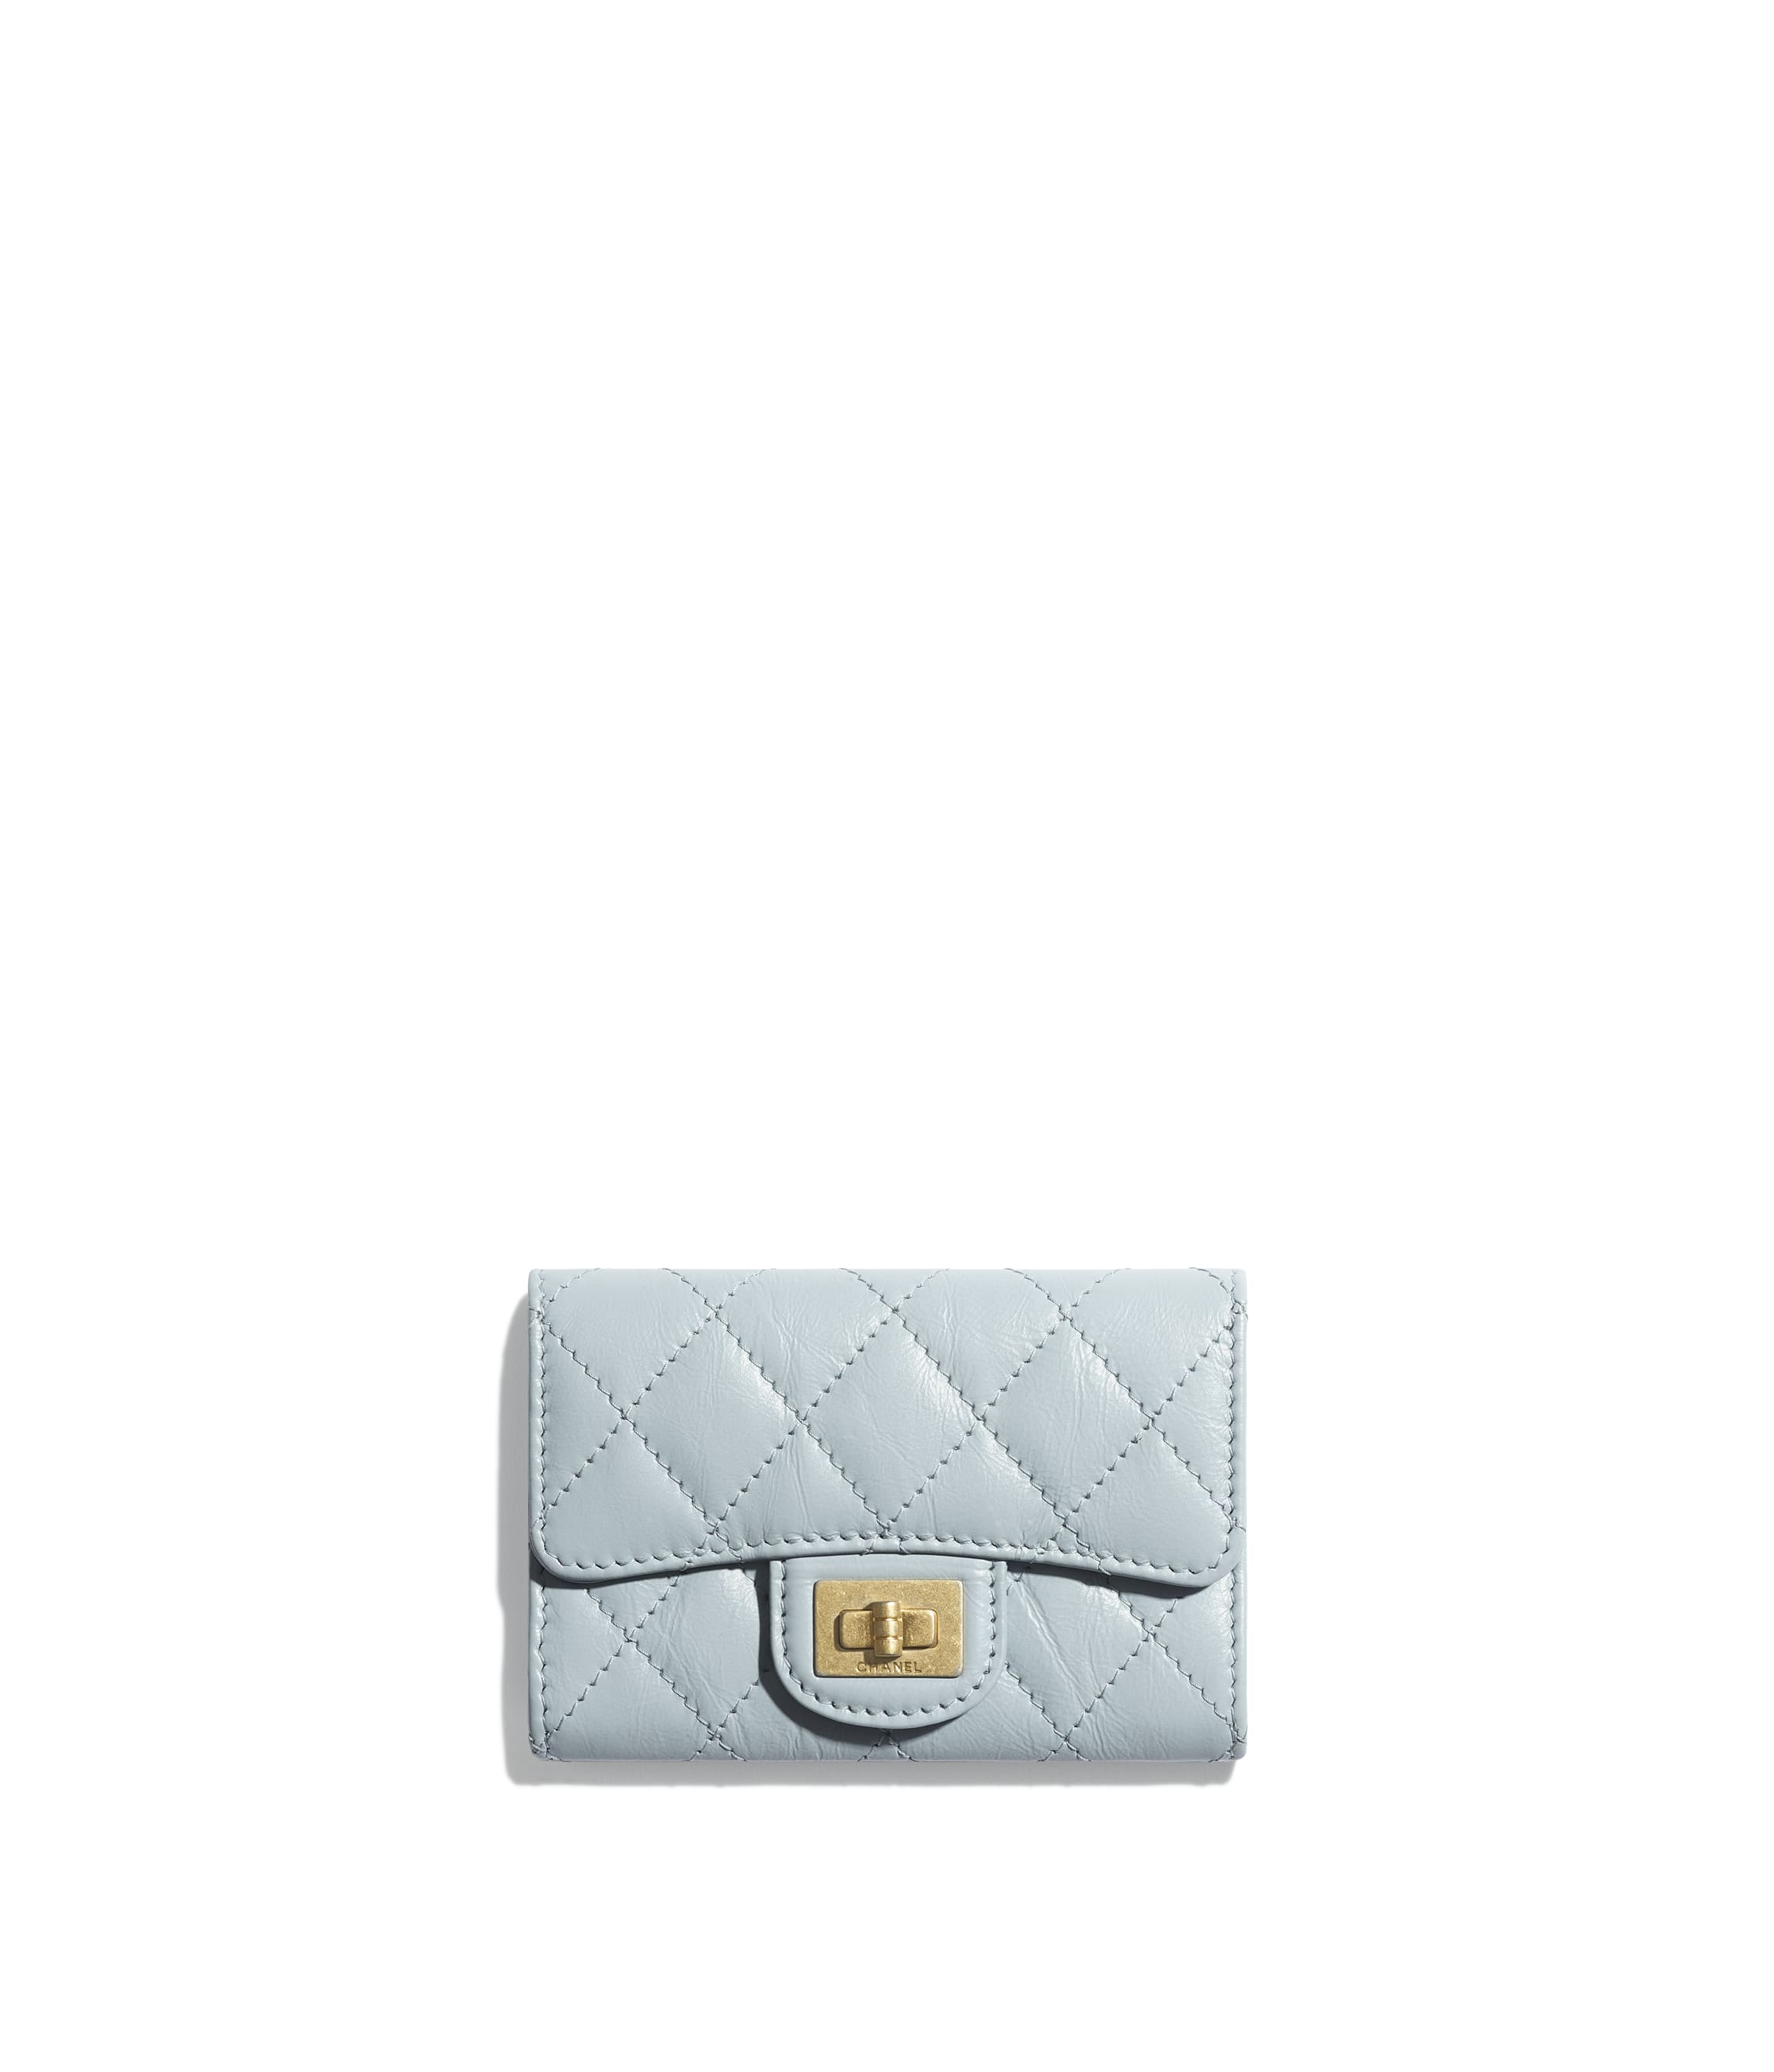 0c58dc3ec74d 2.55 - Small Leather Goods - CHANEL